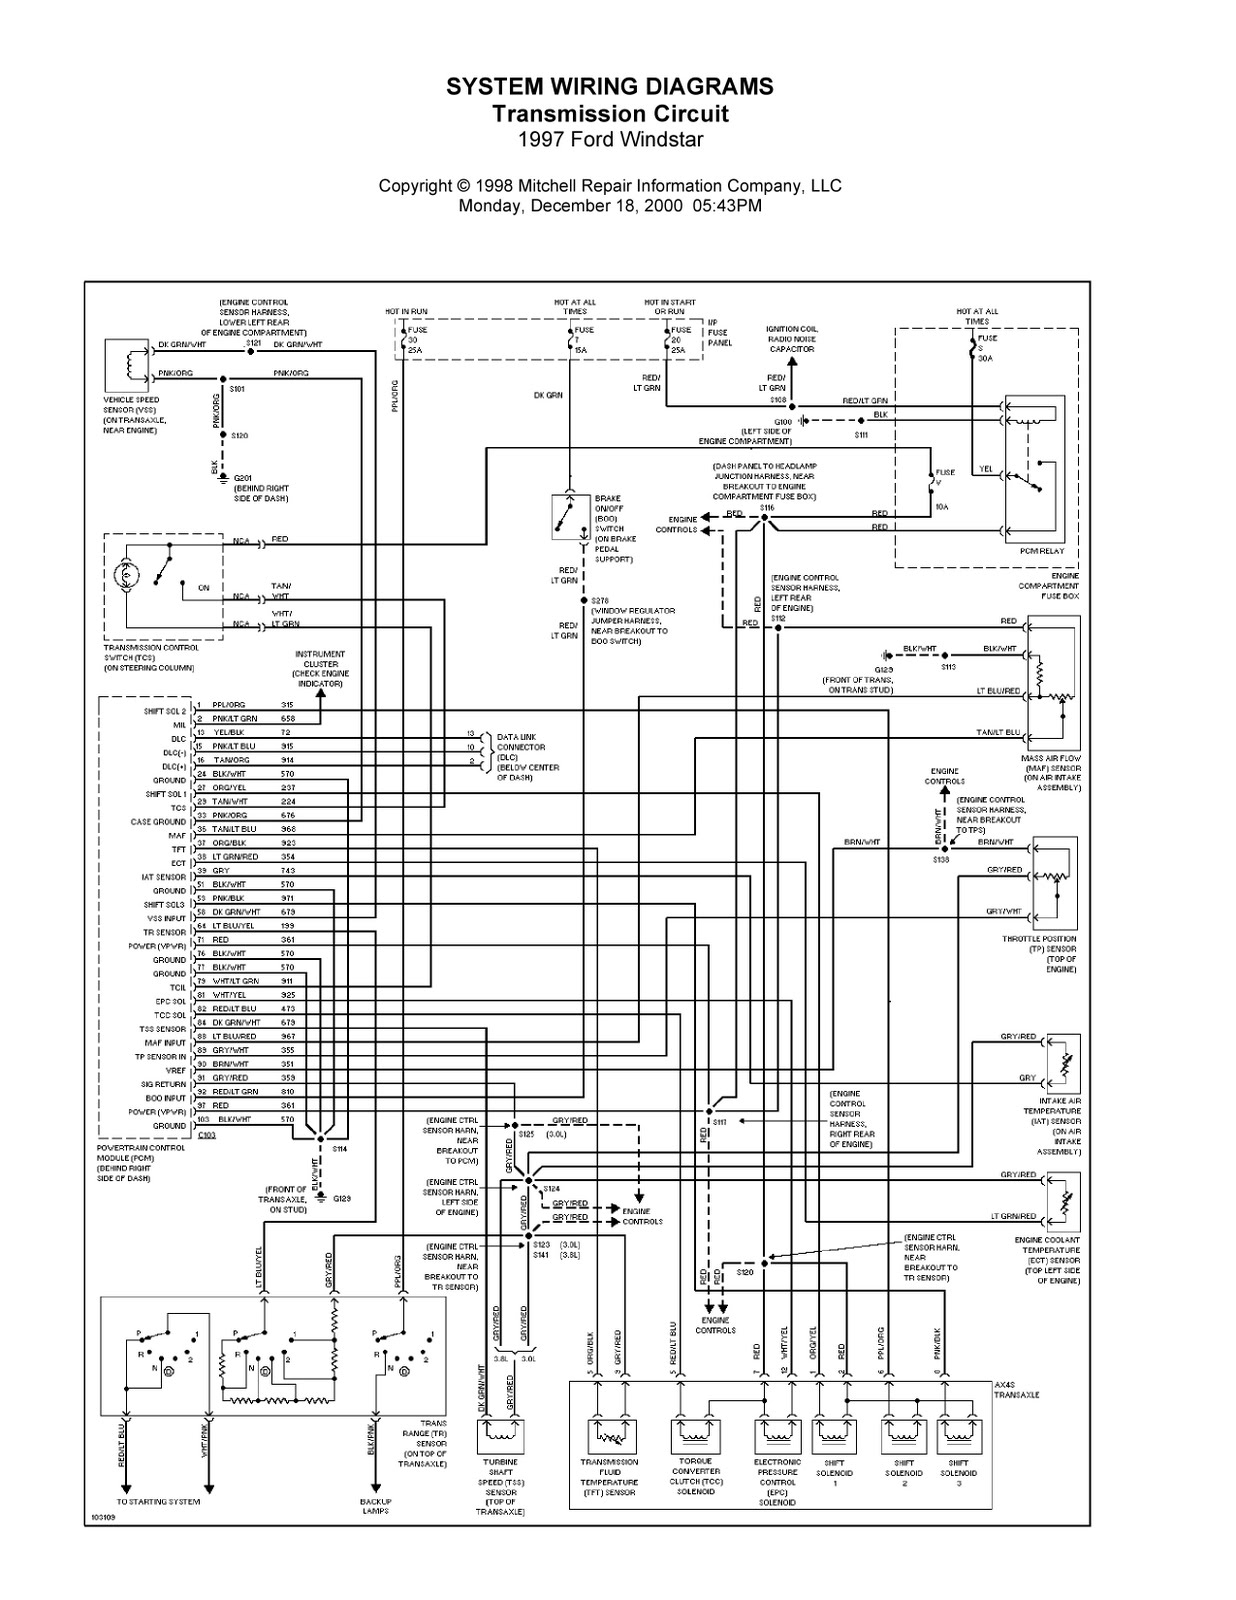 1997 ford windstar complete system wiring diagrams wiring diagrams rh  wiringdiagramsolution blogspot com Ford Factory Radio Wiring Ford Wiring  Diagrams